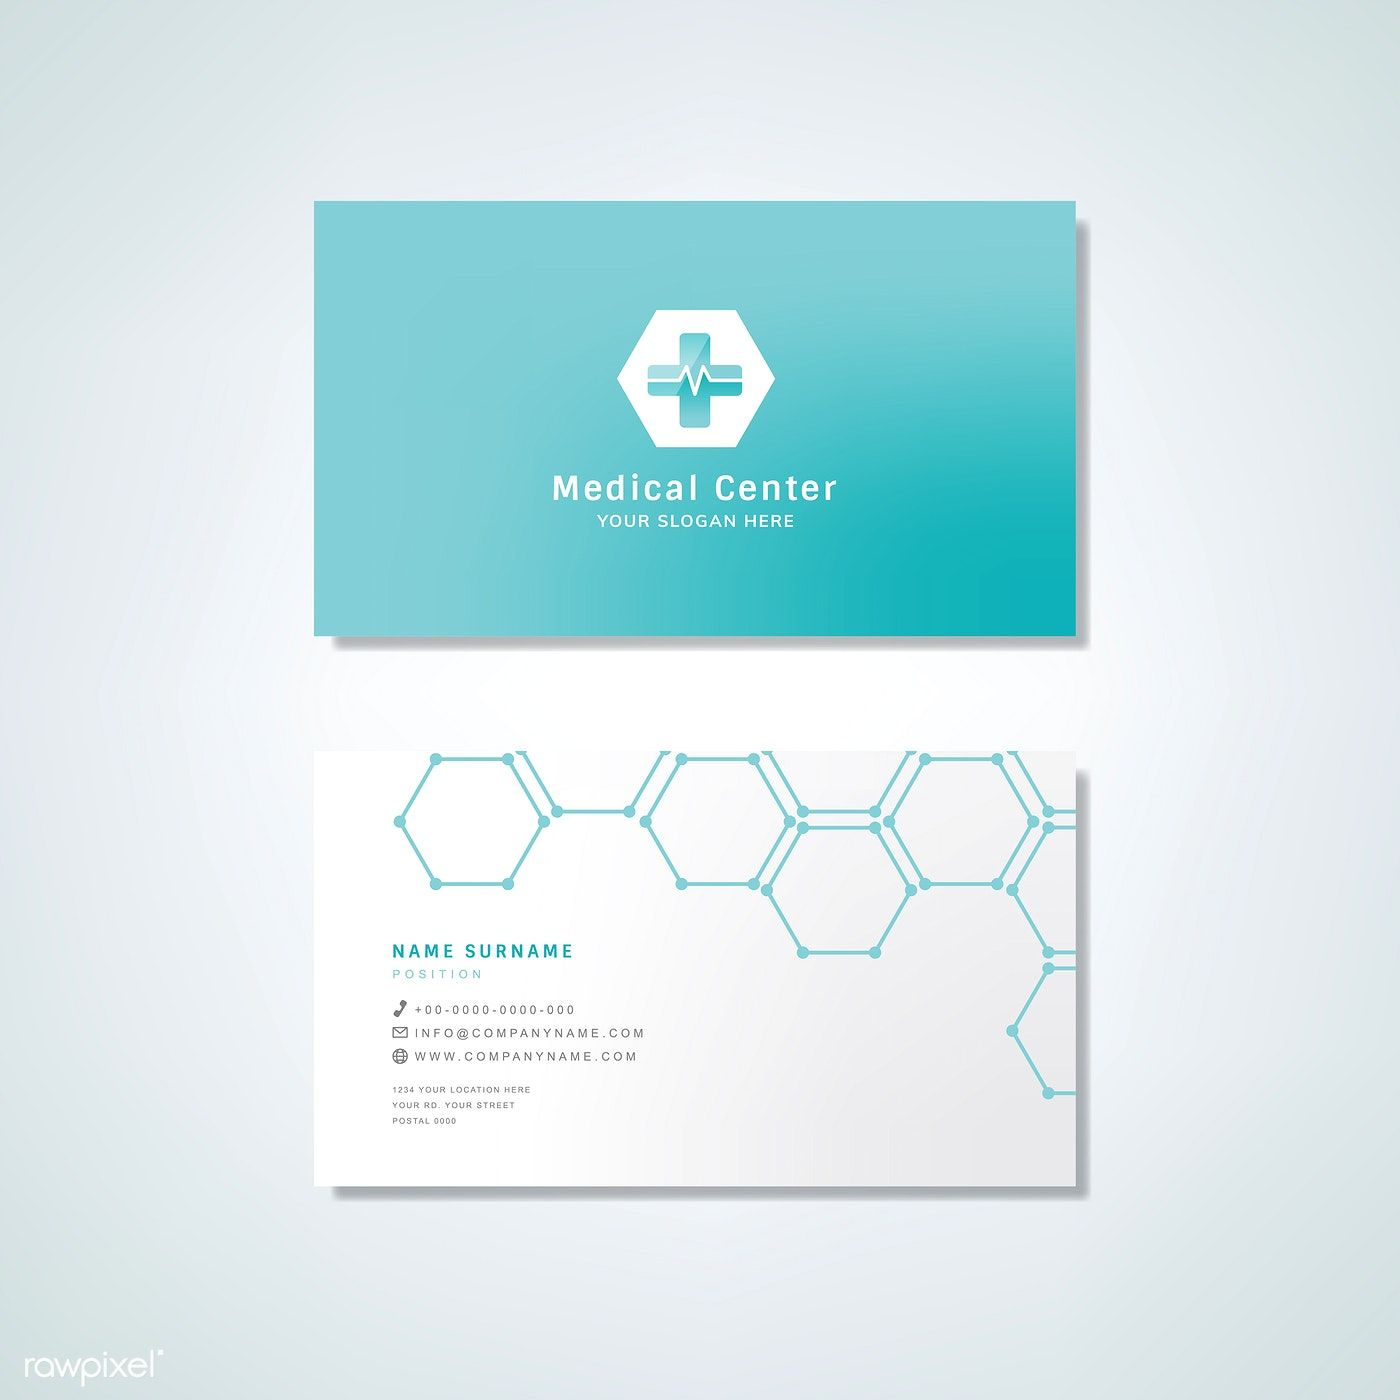 Medical Professional Business Card Design Mockup Free Image By Rawpixel Com Business Card Design Medical Business Card Professional Business Cards